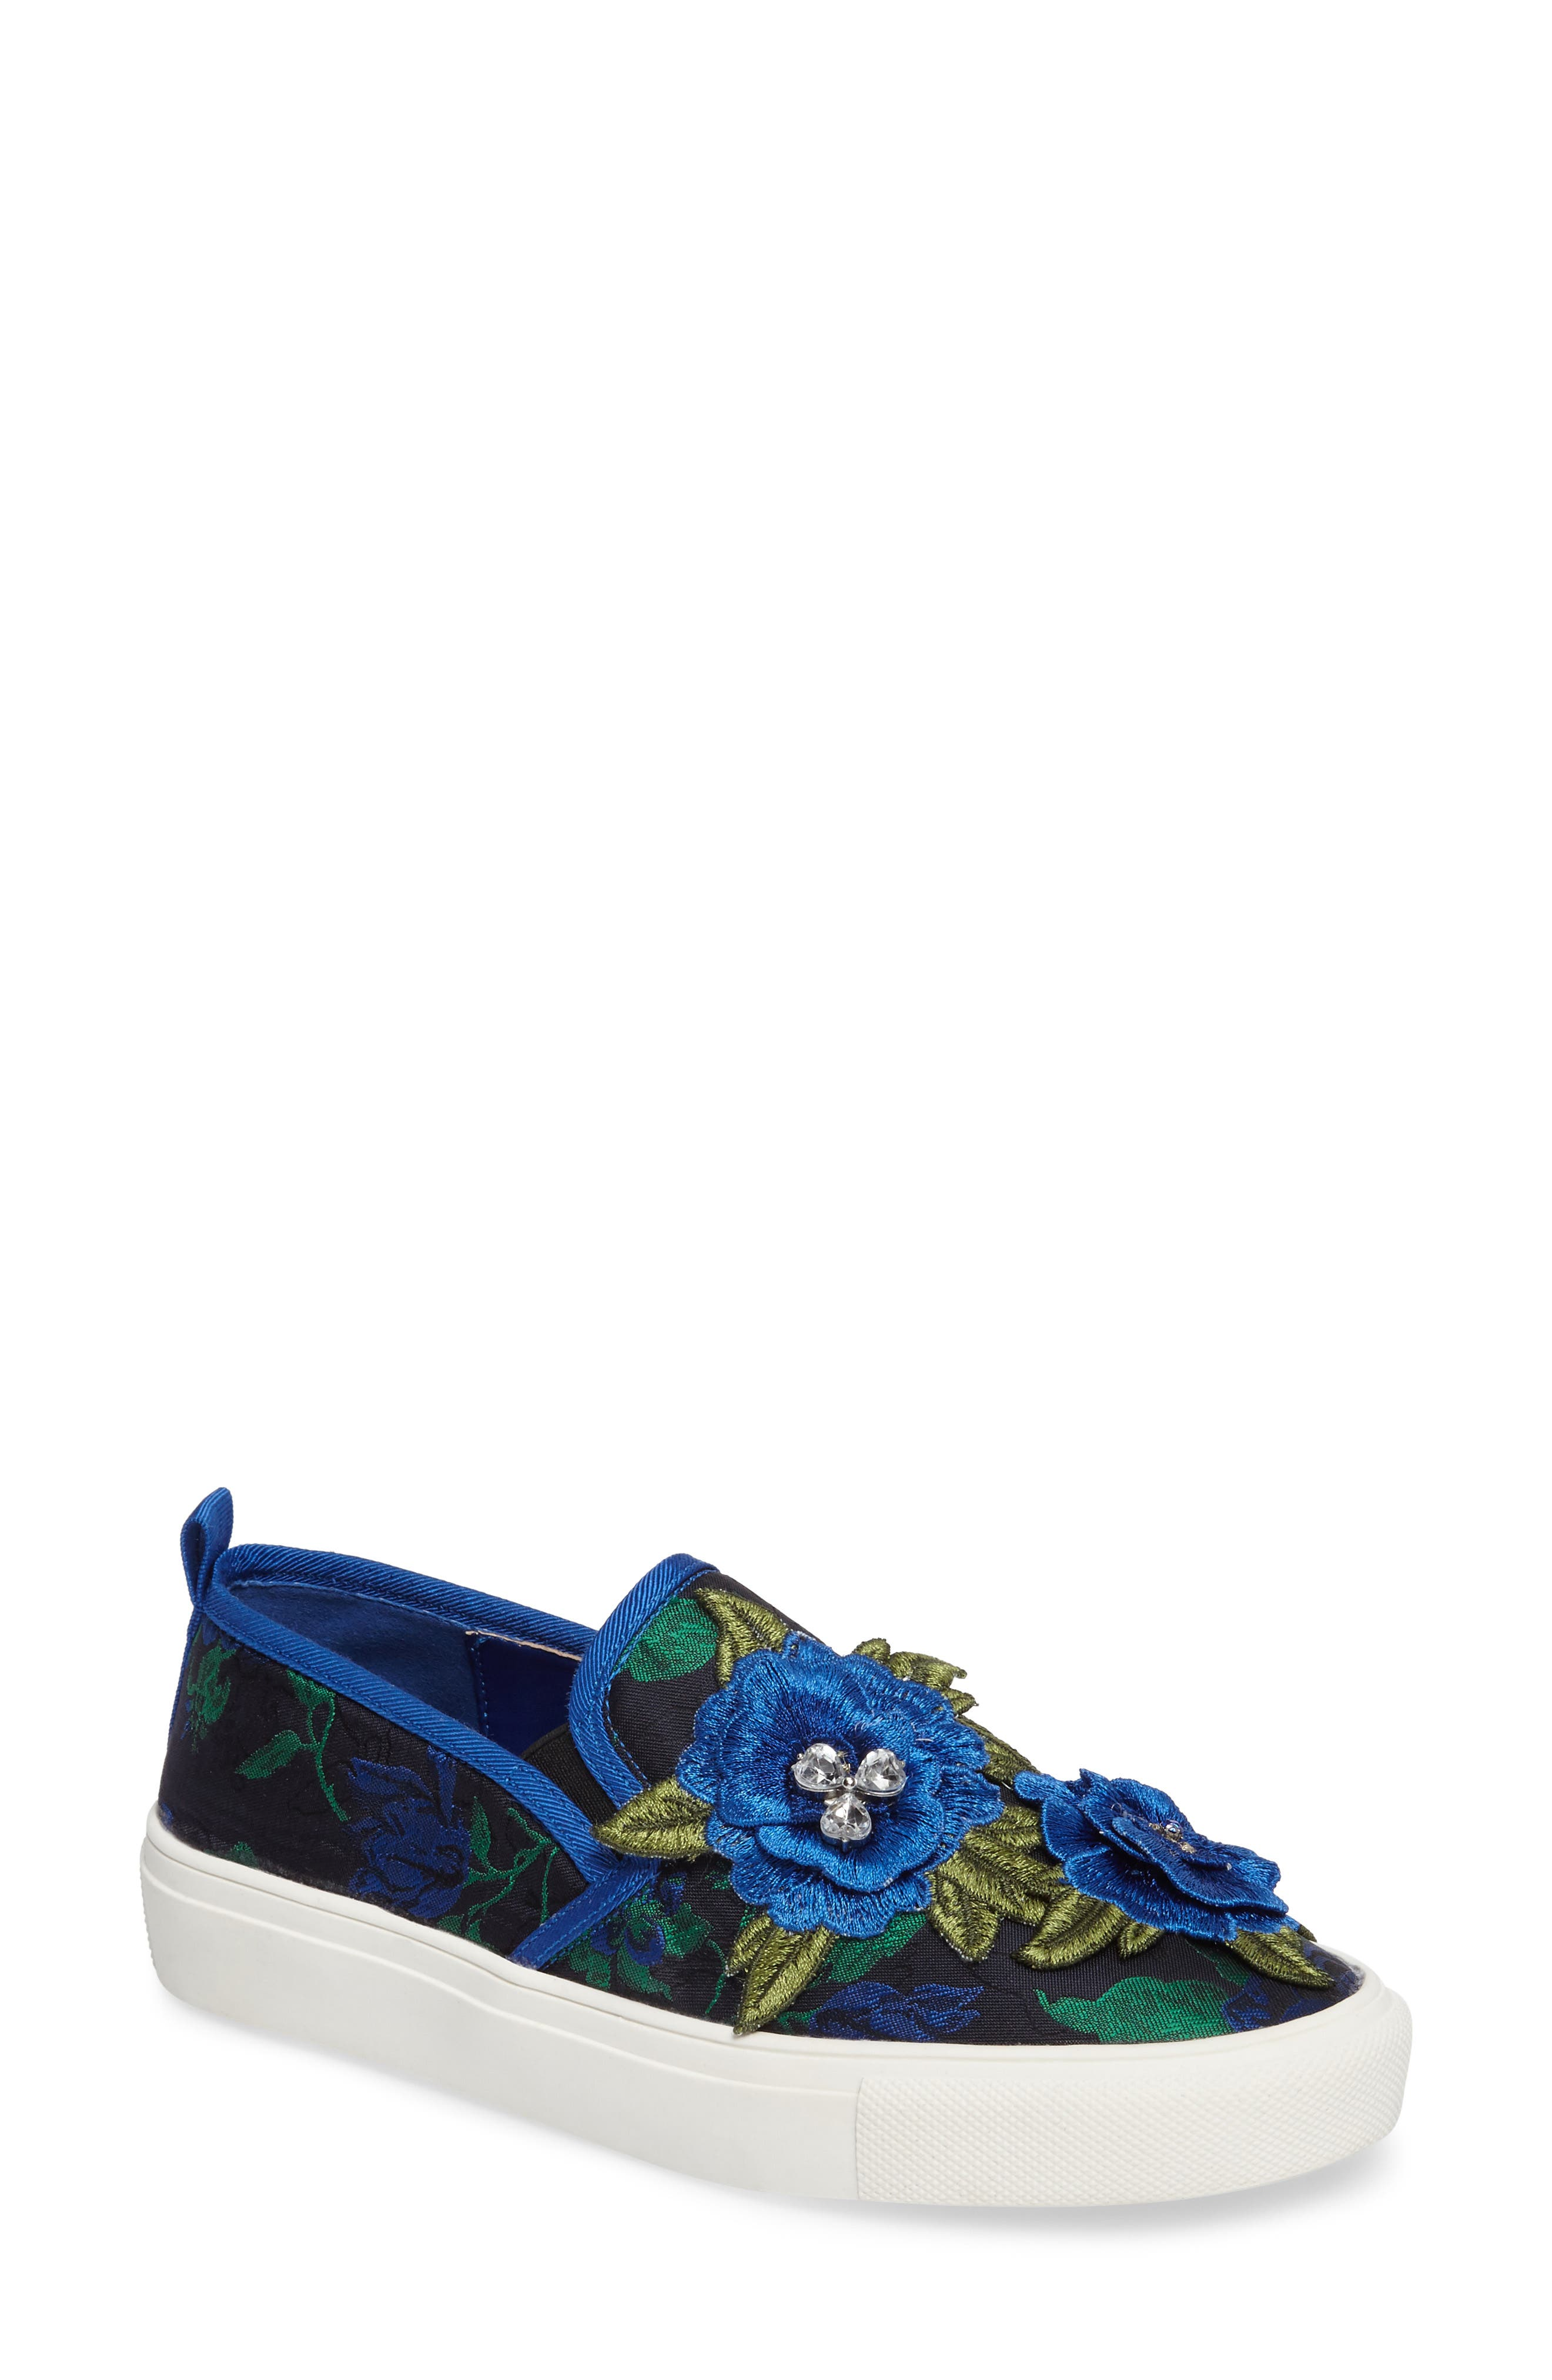 Topshop Tessa Embroidered Slip-On Sneaker (Women)